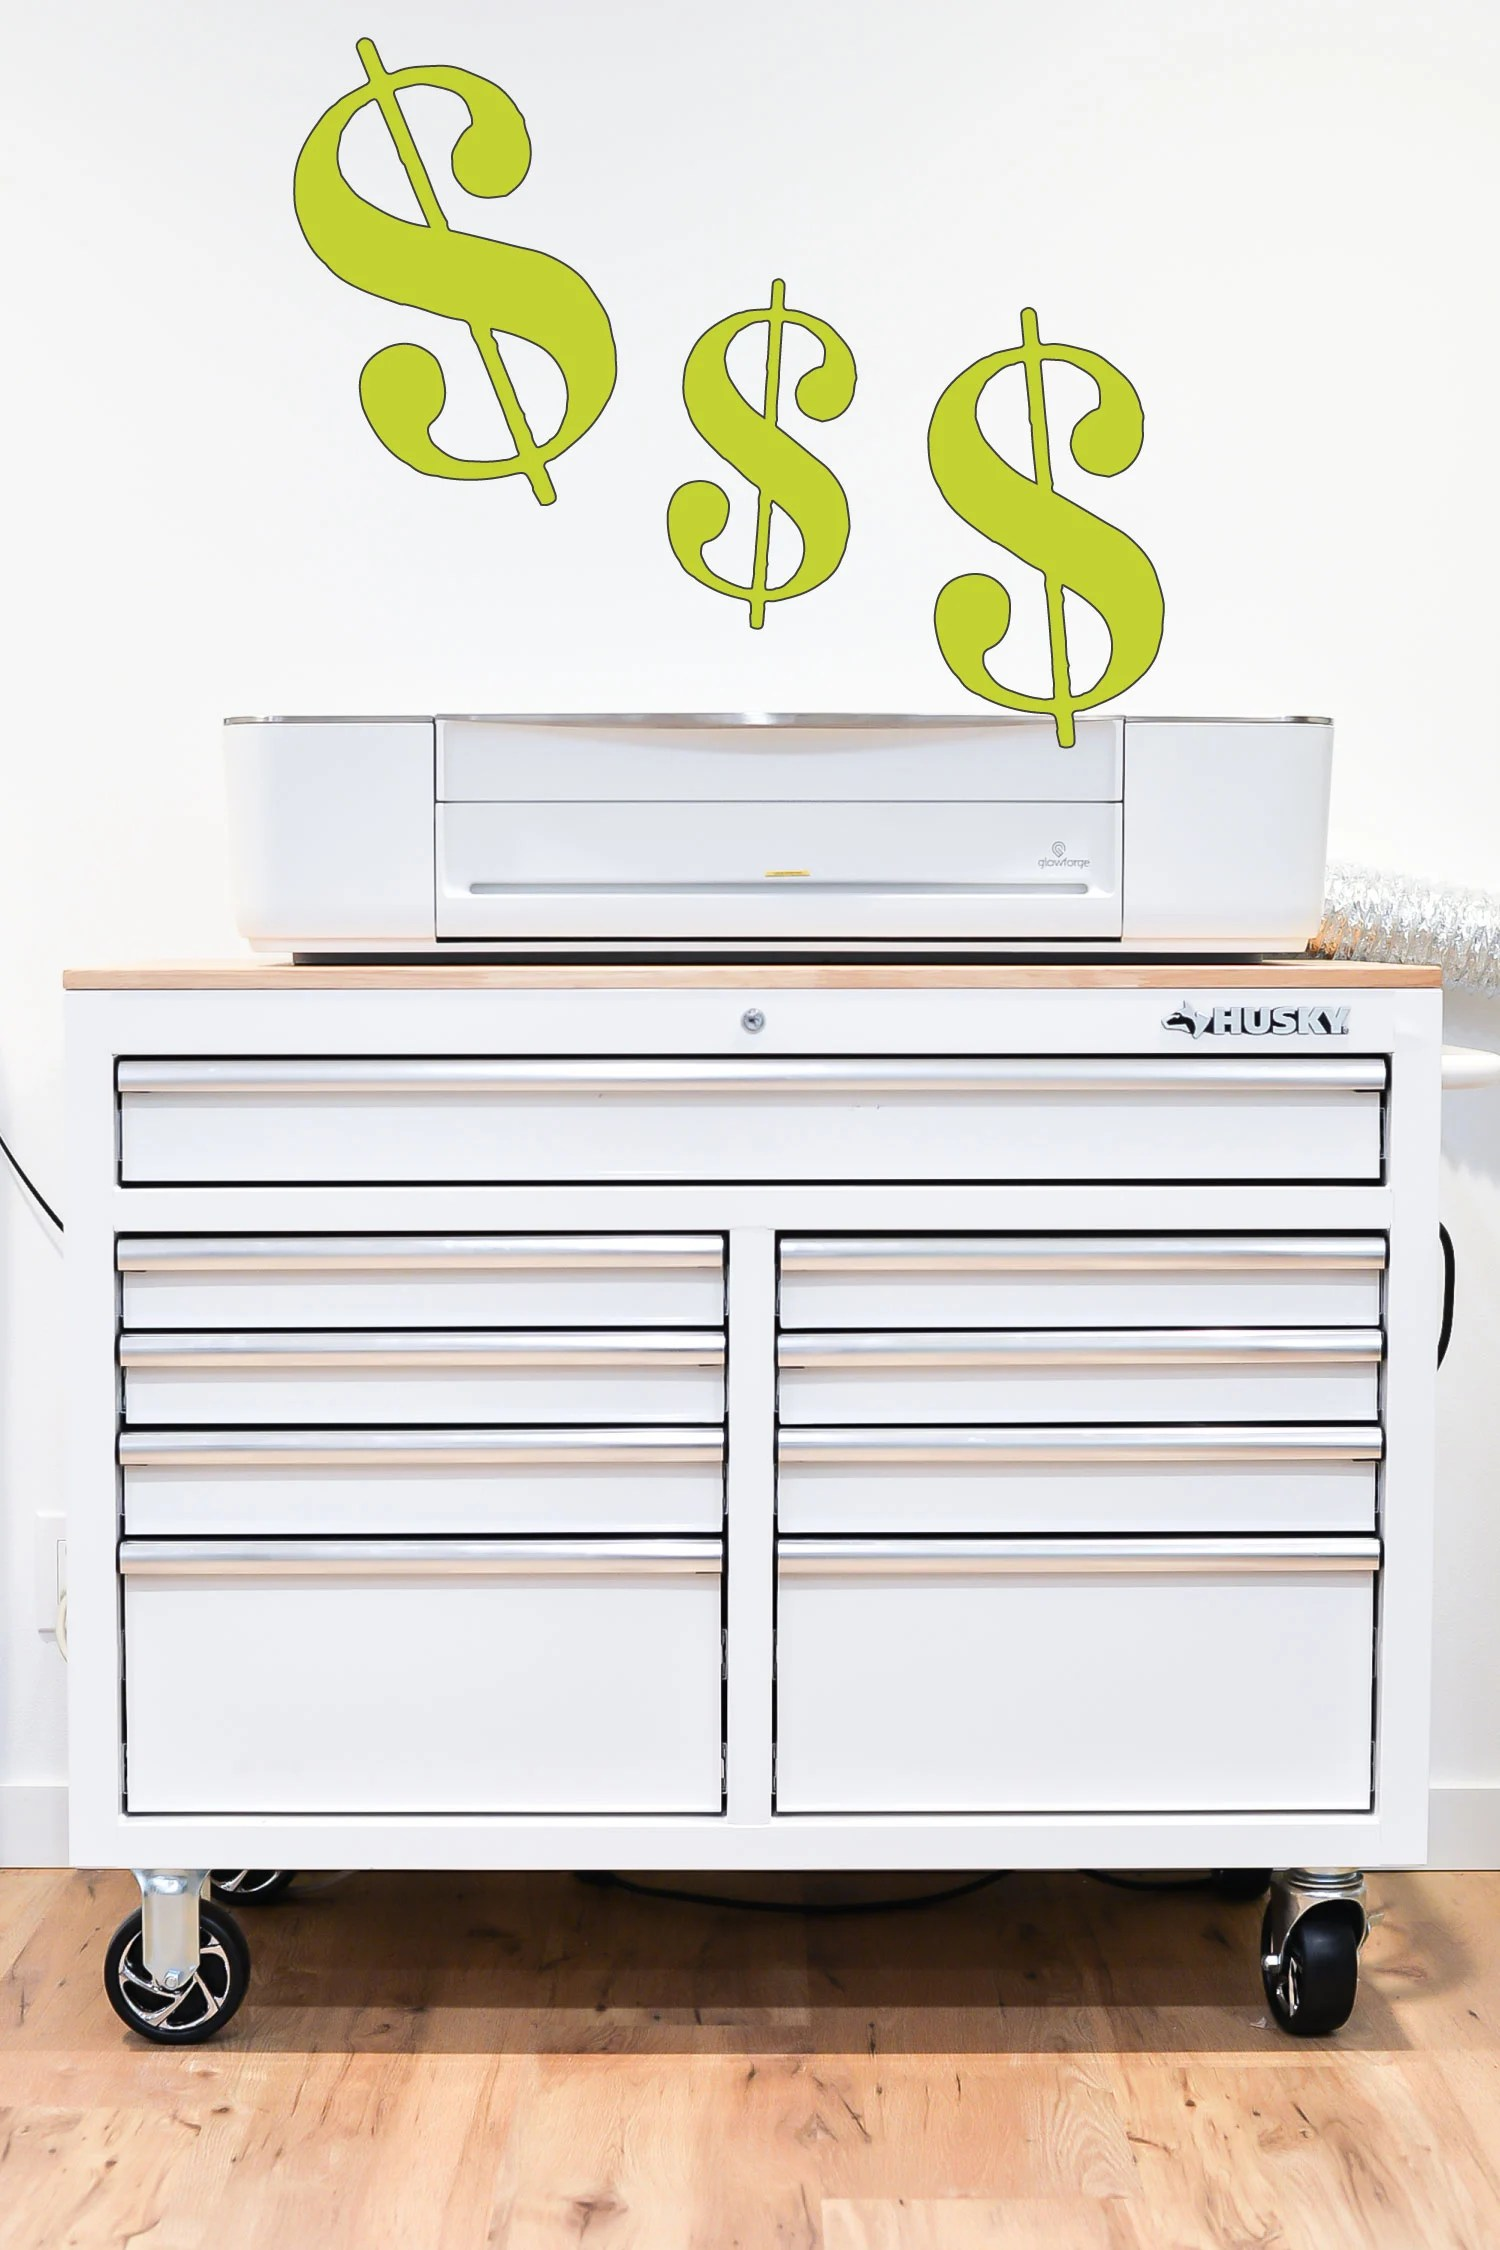 Glowforge with Dollar Signs coming out of it